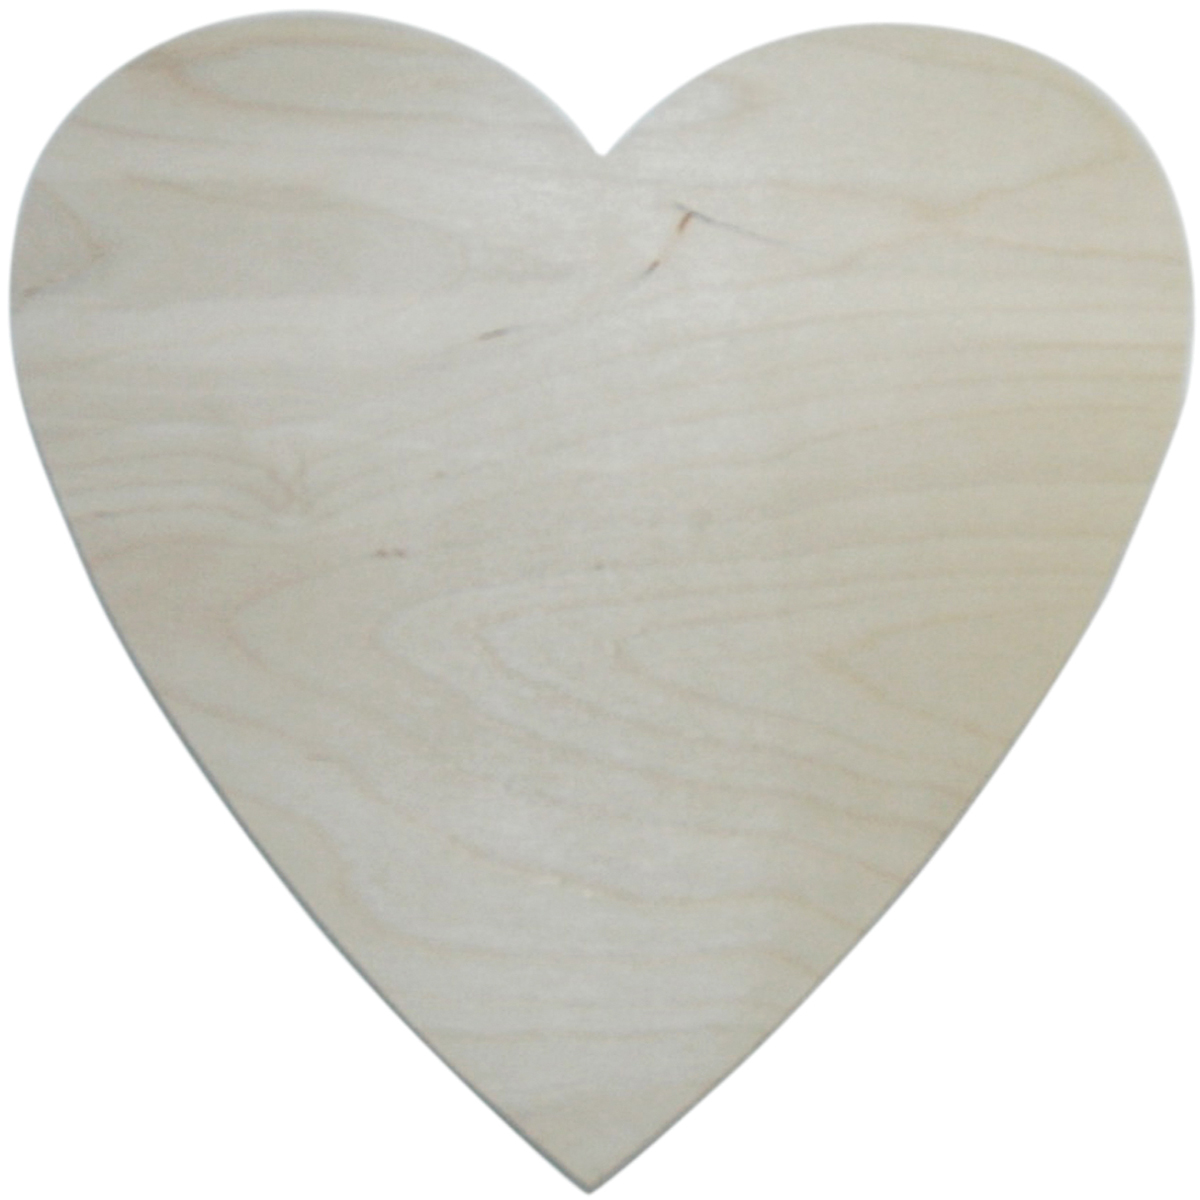 "MPI Unfinished Wood Baltic Birch Plaque, Heart, 10"" x 10"